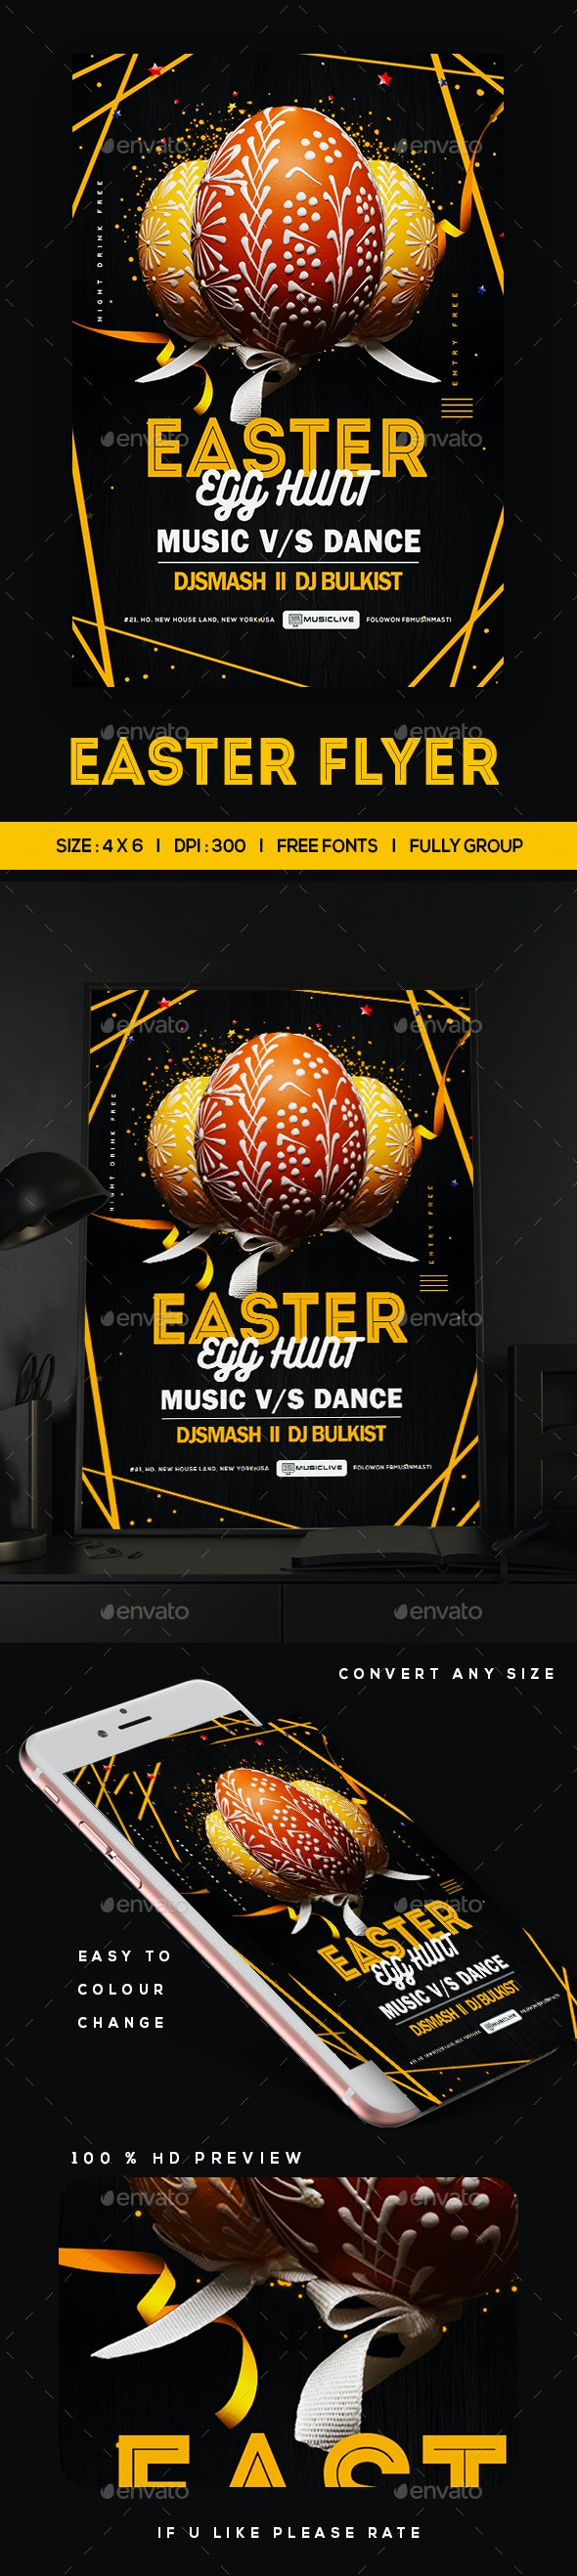 Easter Egg Hunt Event Flyer - Clubs & Parties Events